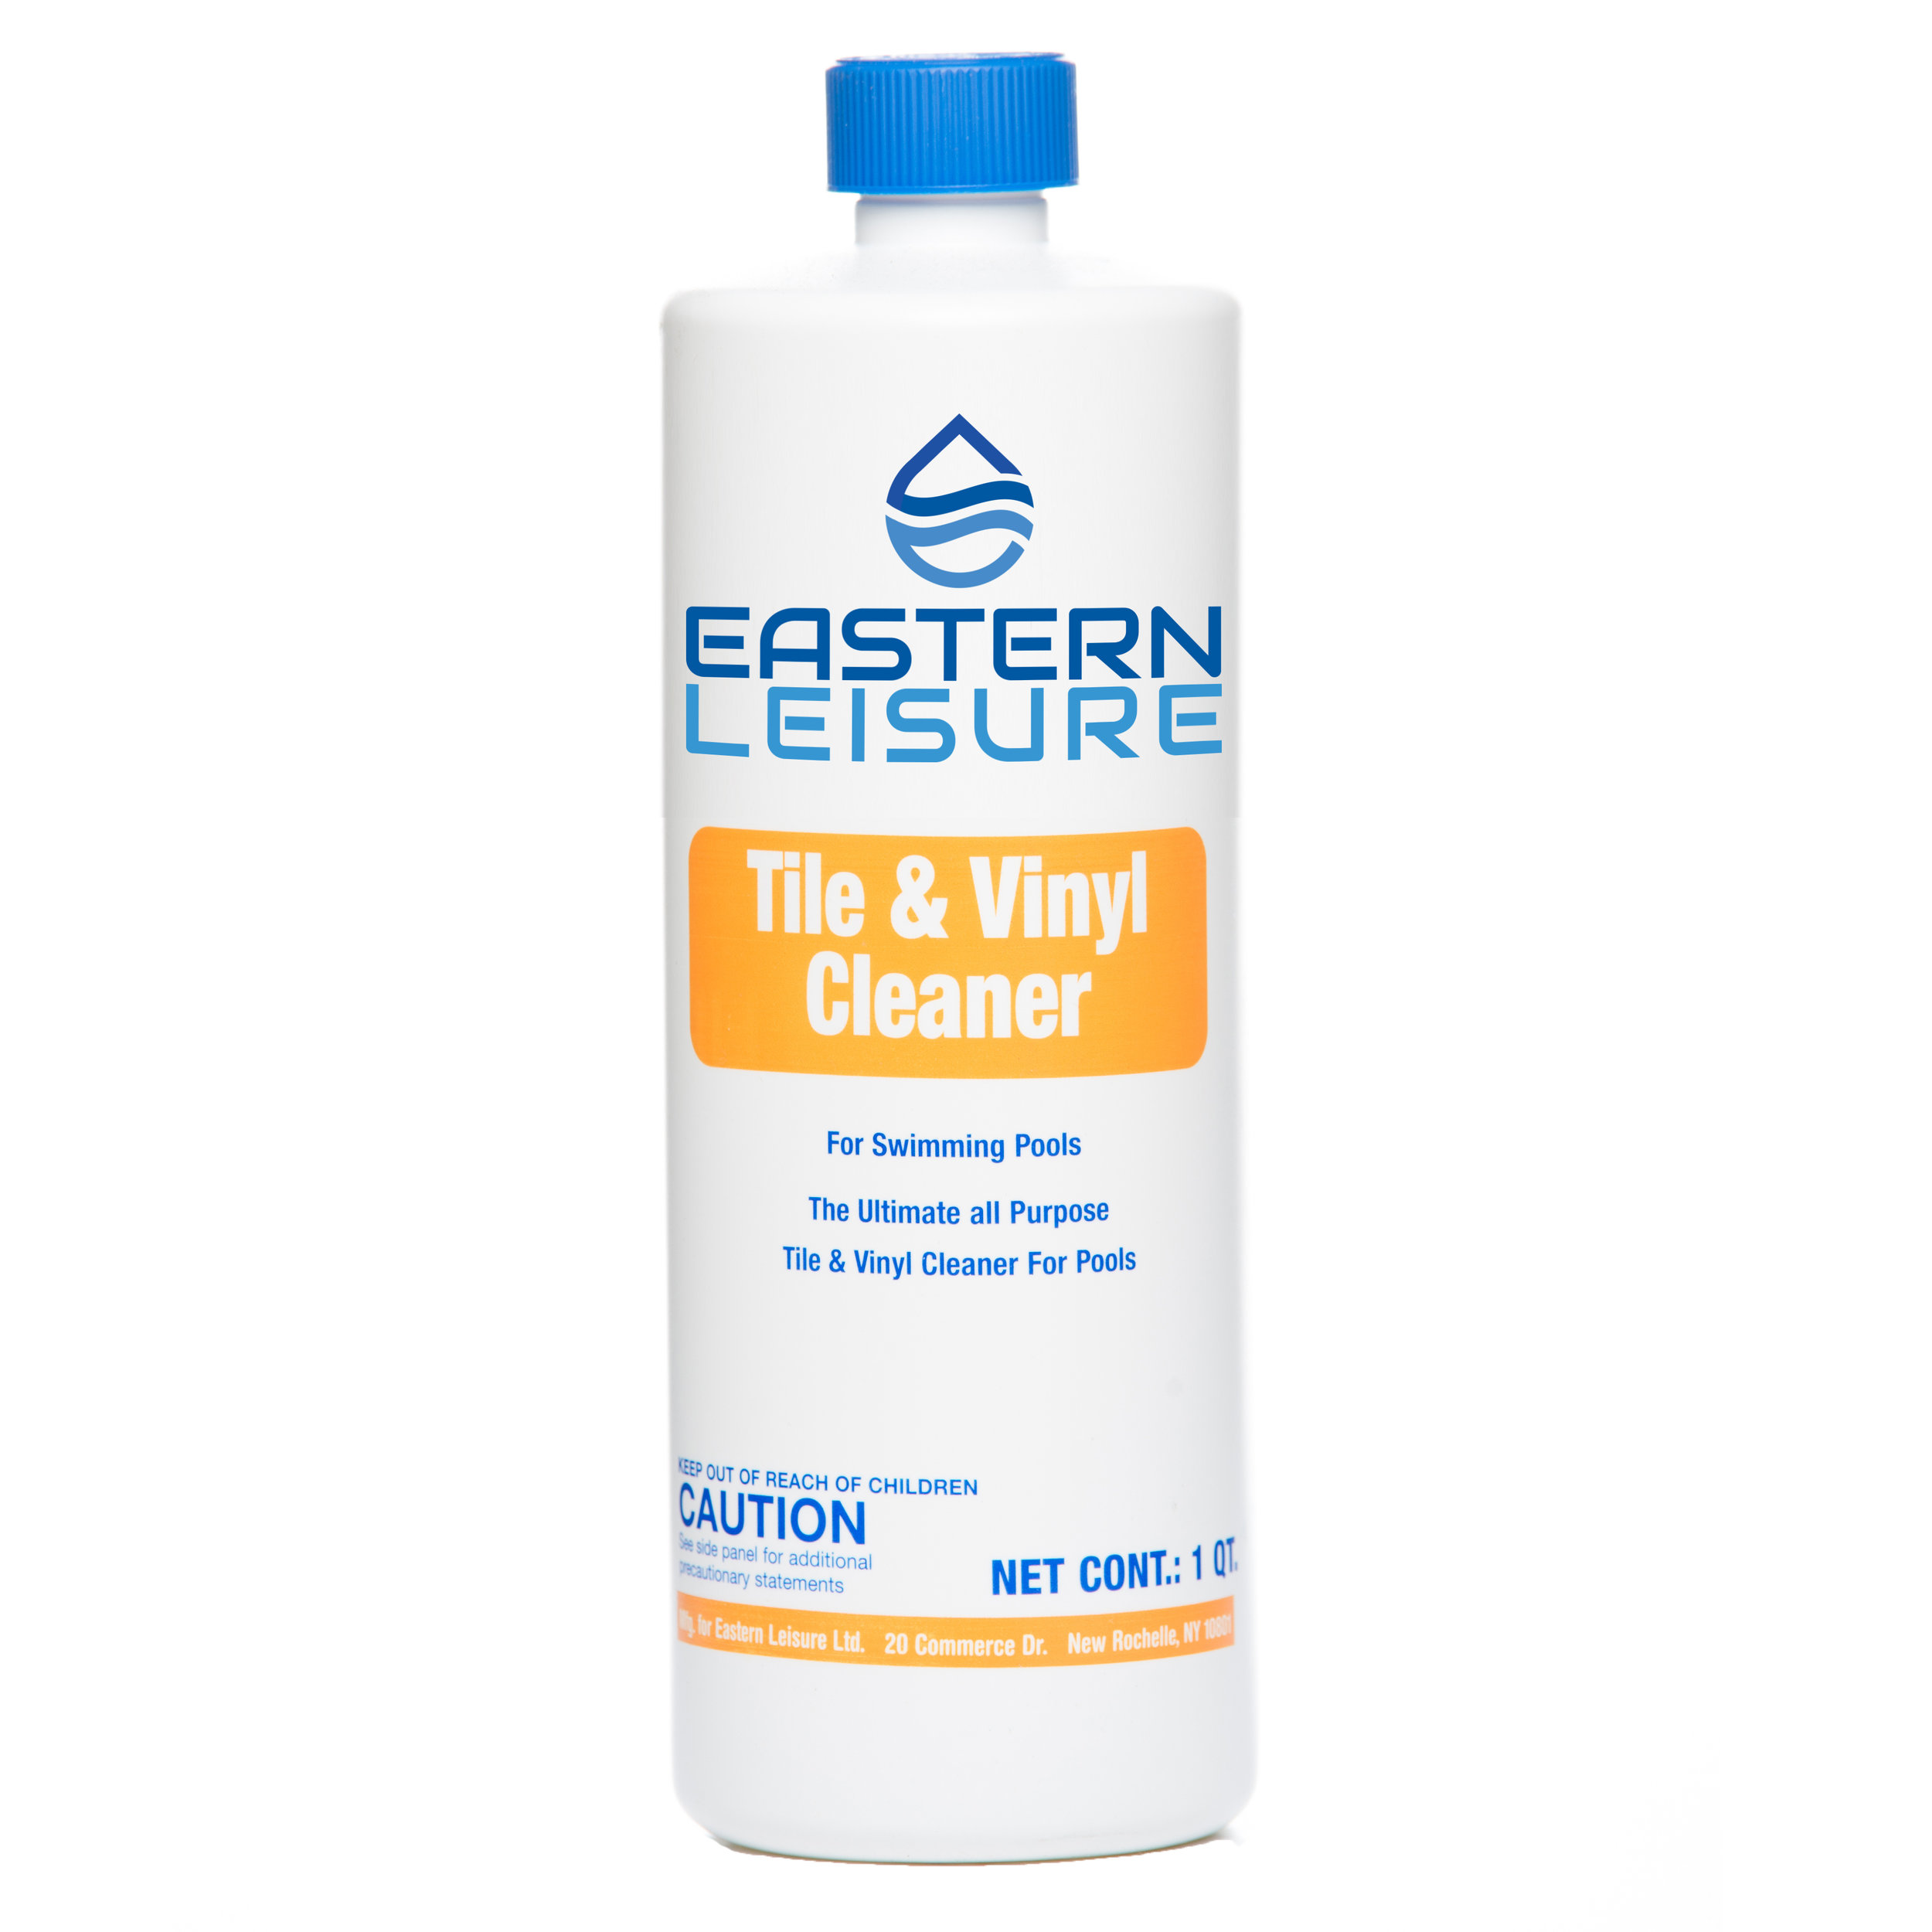 Tile & Vinyl Cleaner   ELP19A - 1 qt. bottle, 12/case ELP19D - 1 gal. bottle, 4/case  A concentrated formula that restores the shine and luster to pool tile and vinyl. Removes oil and scale build-up and is also great on deck equipment.